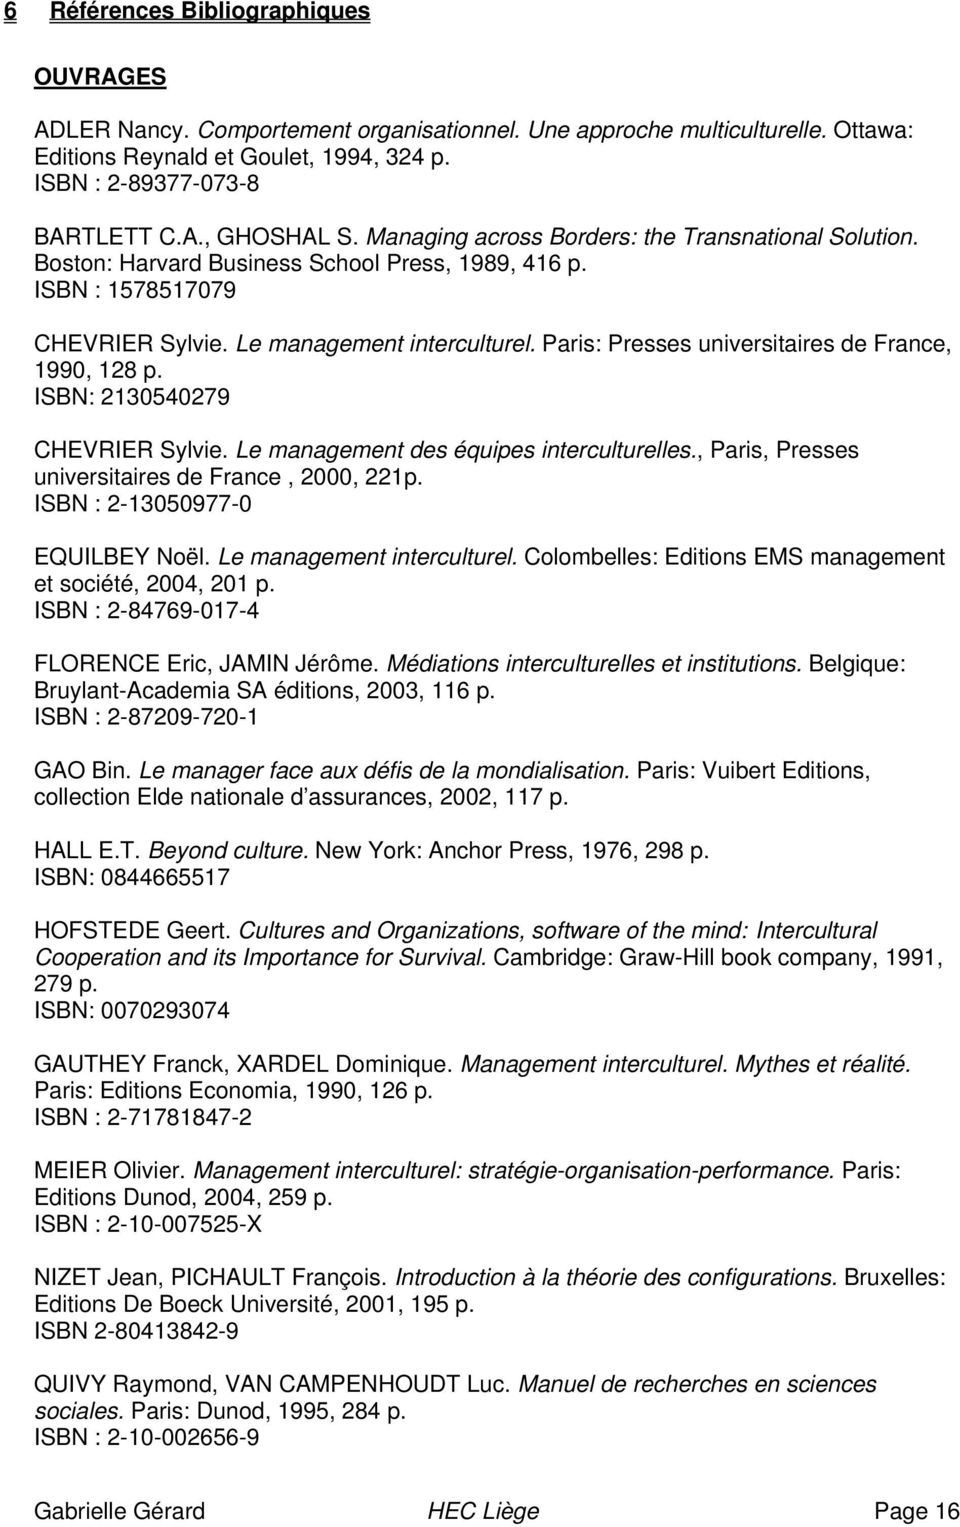 Paris: Presses universitaires de France, 1990, 128 p. ISBN: 2130540279 CHEVRIER Sylvie. Le management des équipes interculturelles., Paris, Presses universitaires de France, 2000, 221p.